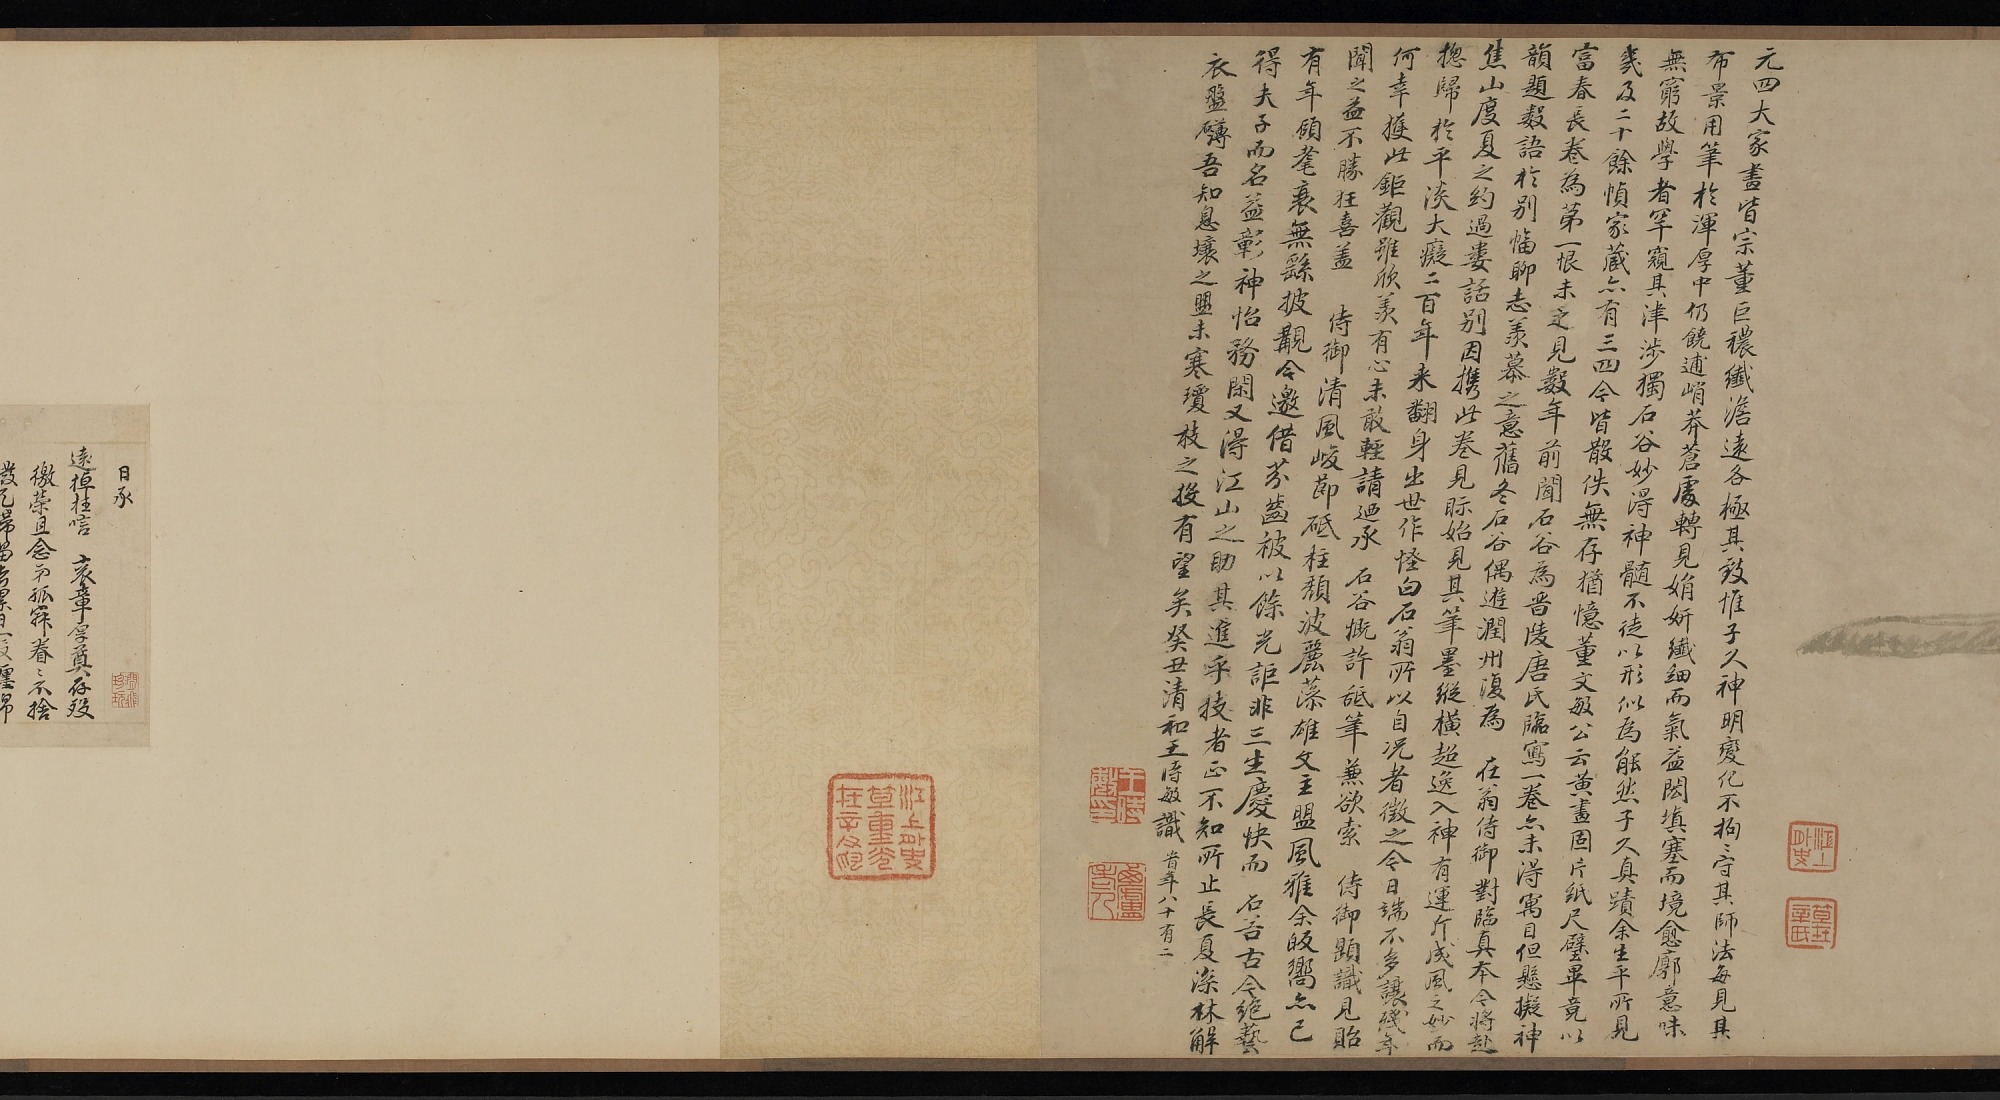 section 12: Dwelling in the Fuchun Mountains after Huang Gongwang